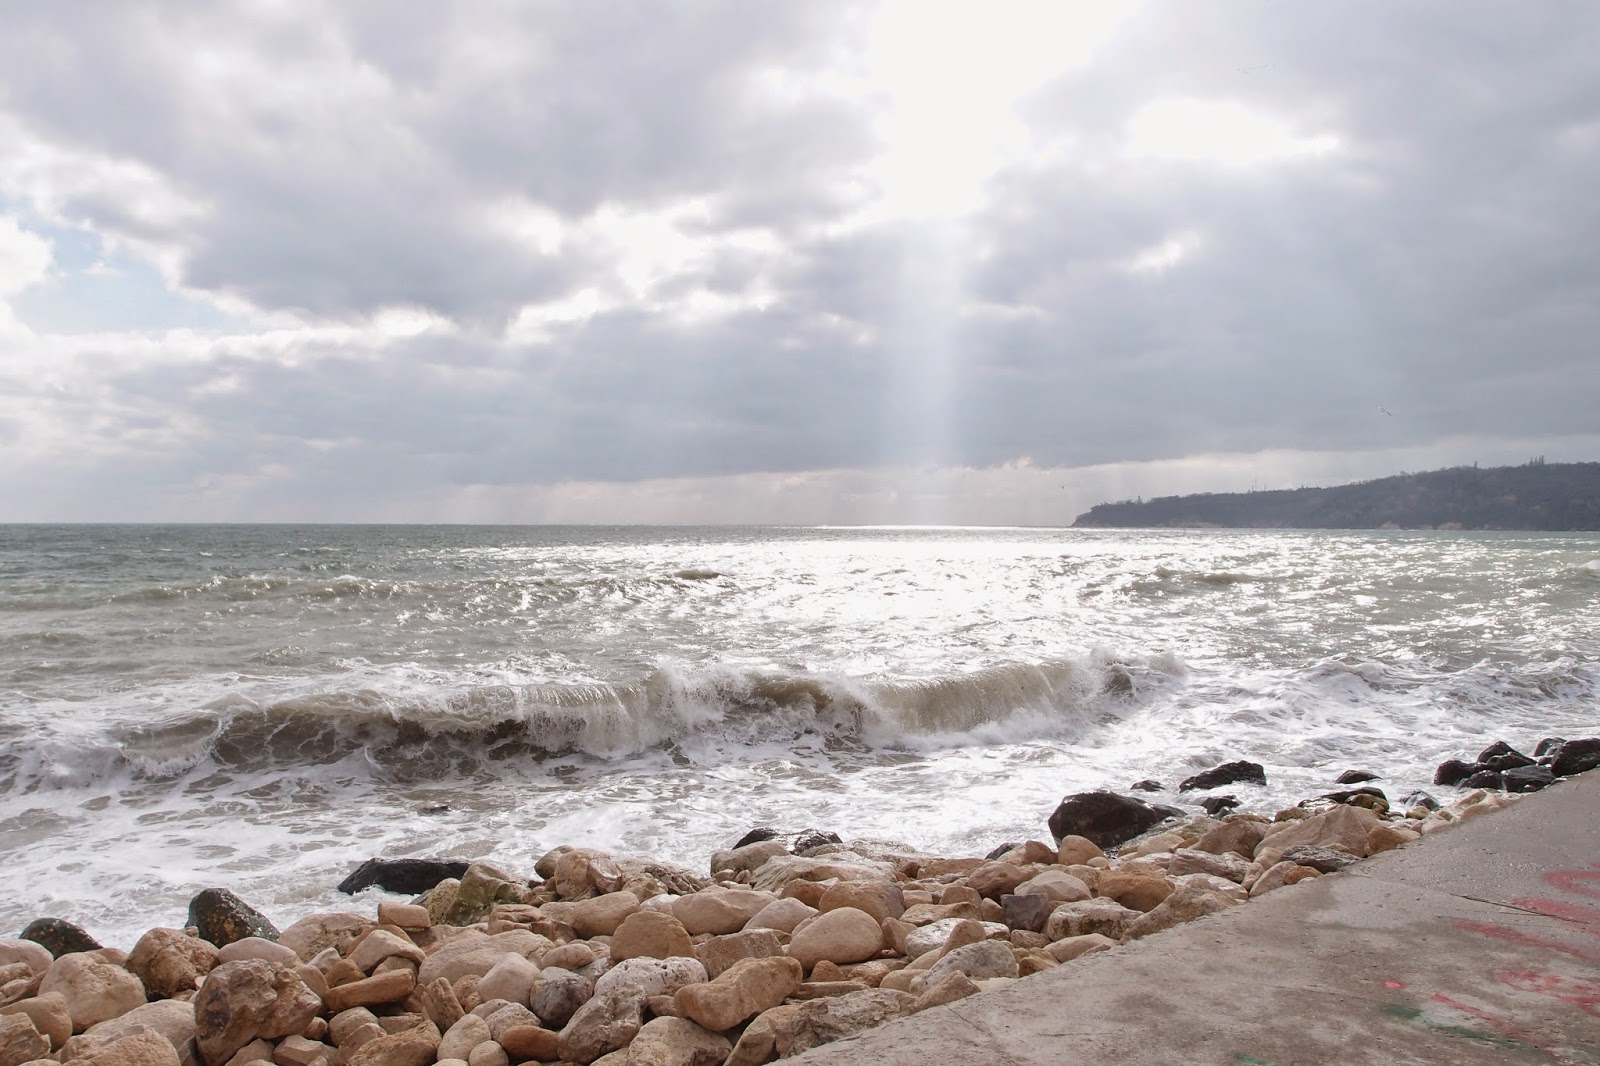 light in a gloomy day - Black Sea, Varna, March 2015